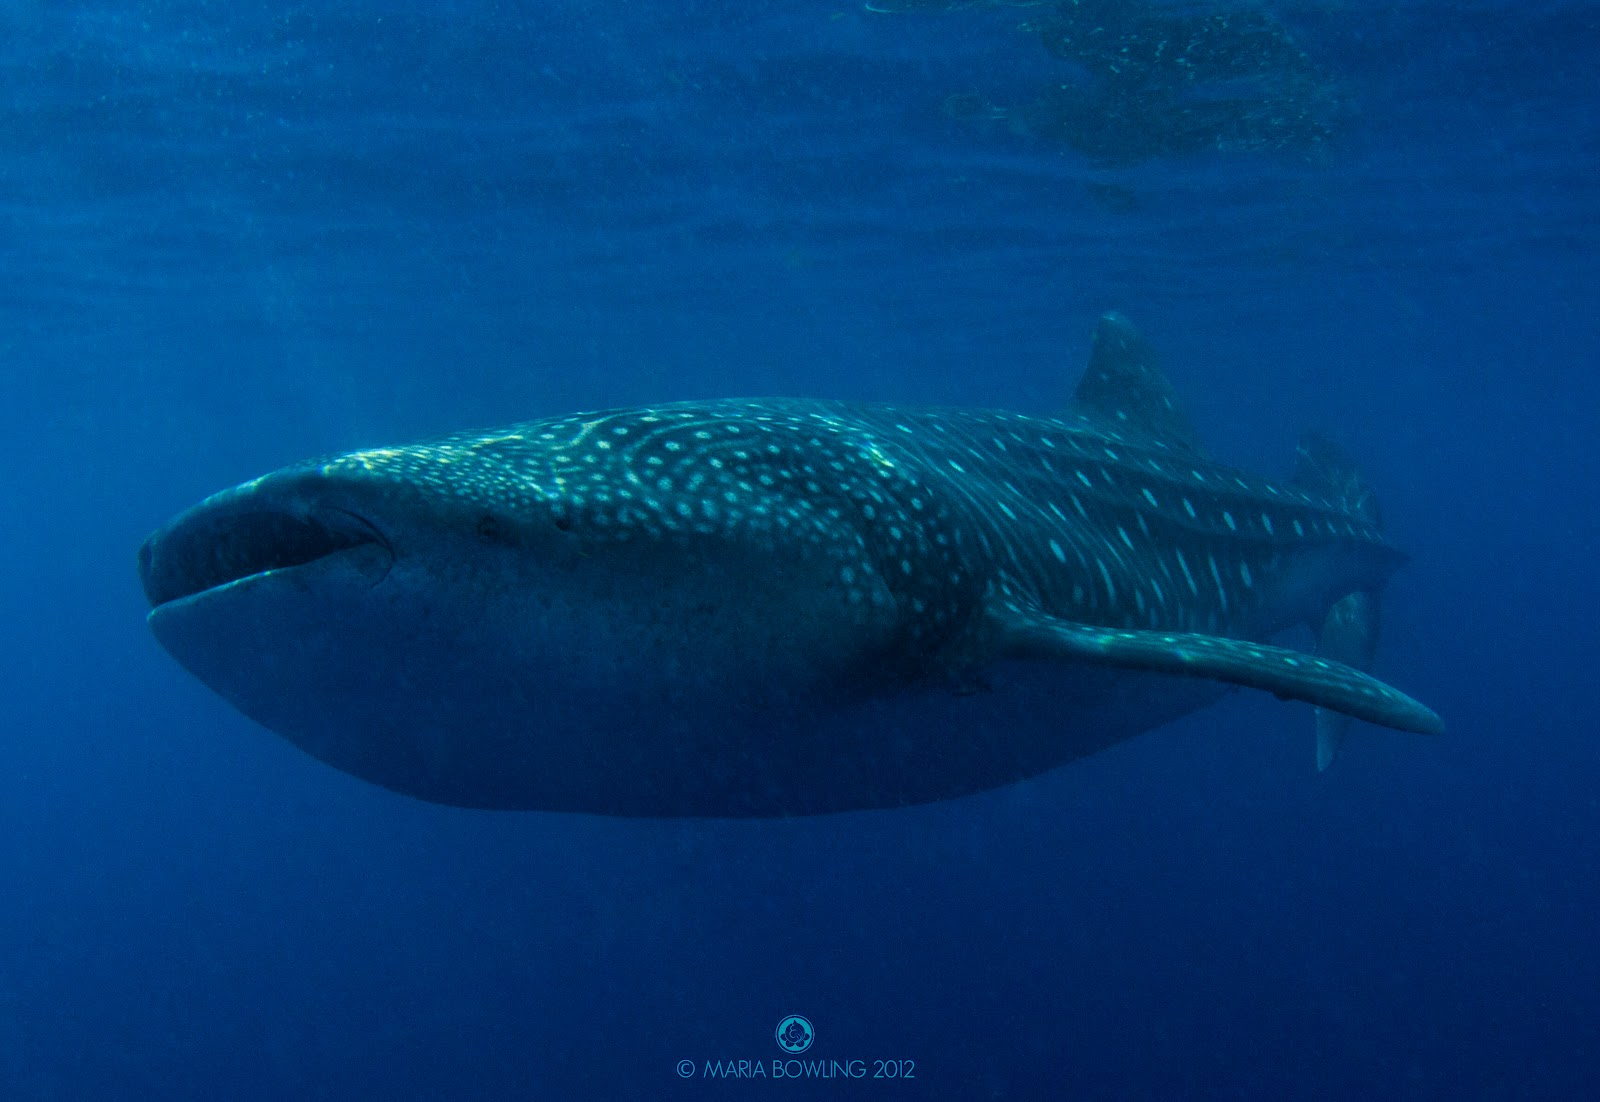 Aninimal Book: Inside Whale Shark Mouth